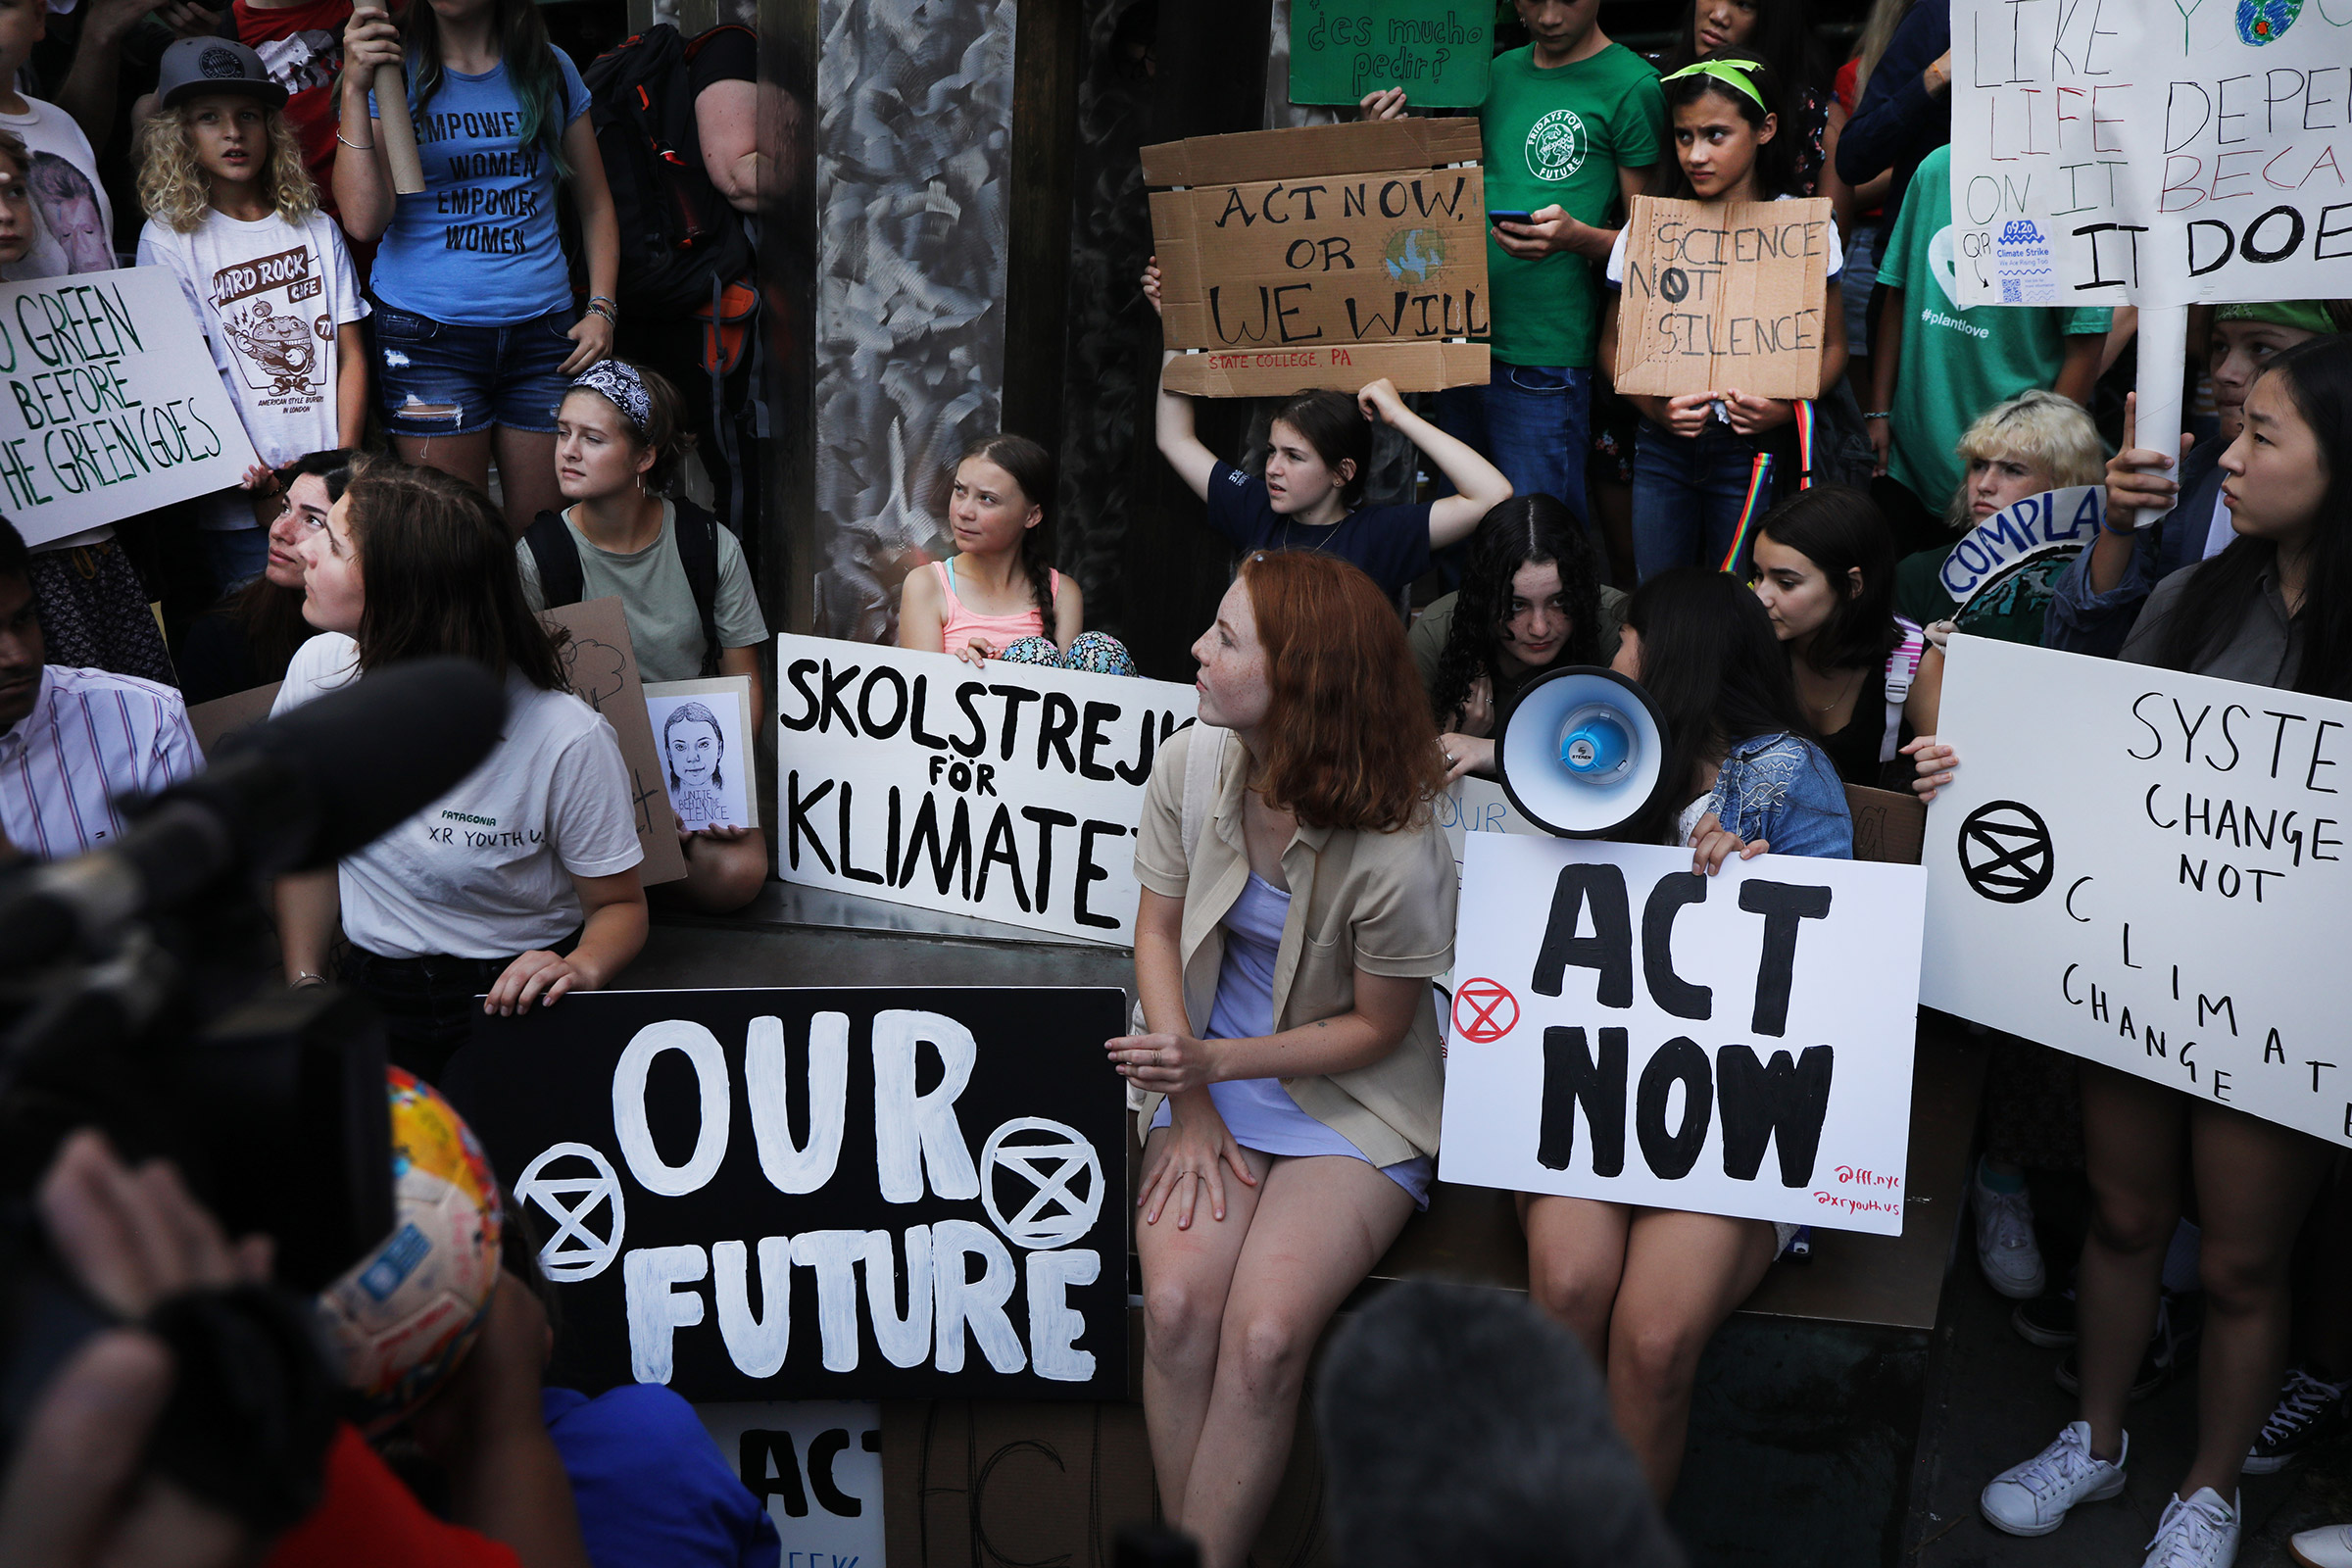 women against climate change